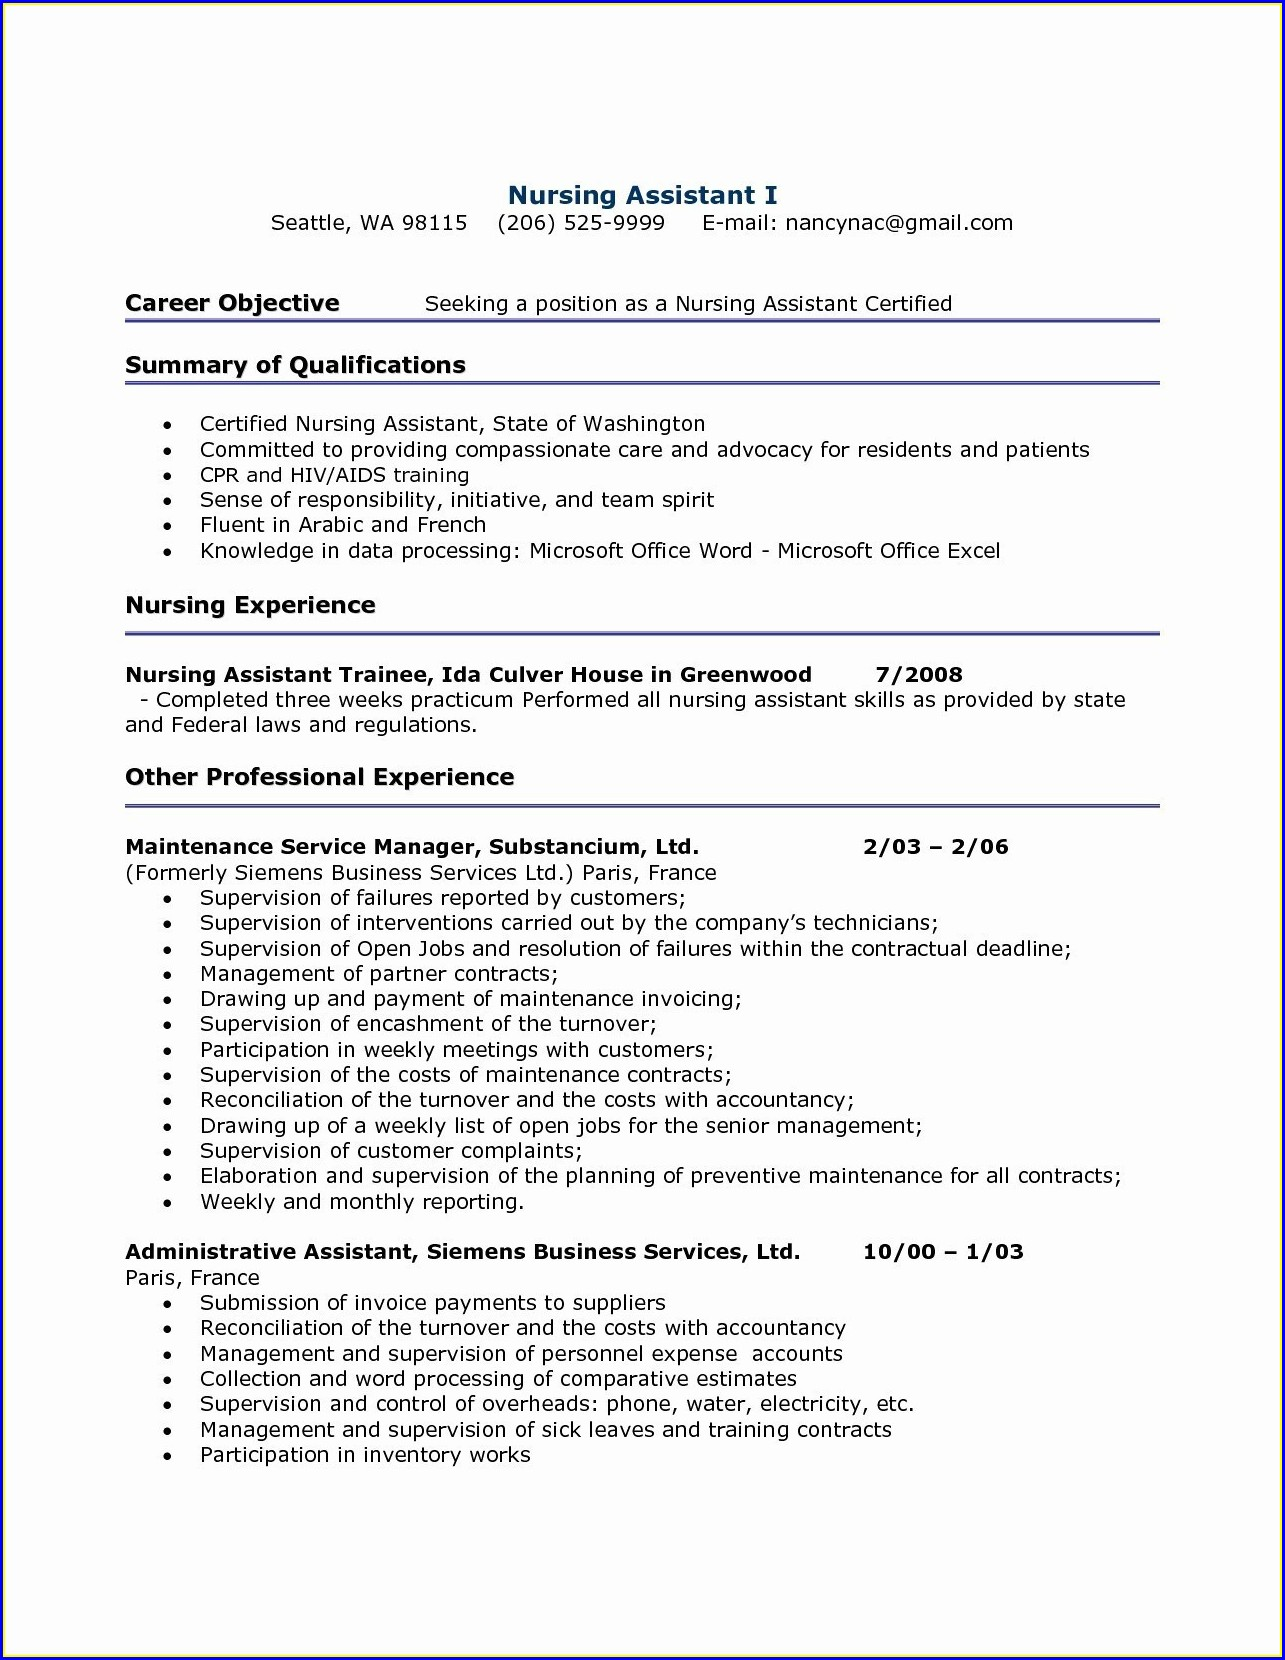 Free Resume Builder For Nursing Assistant